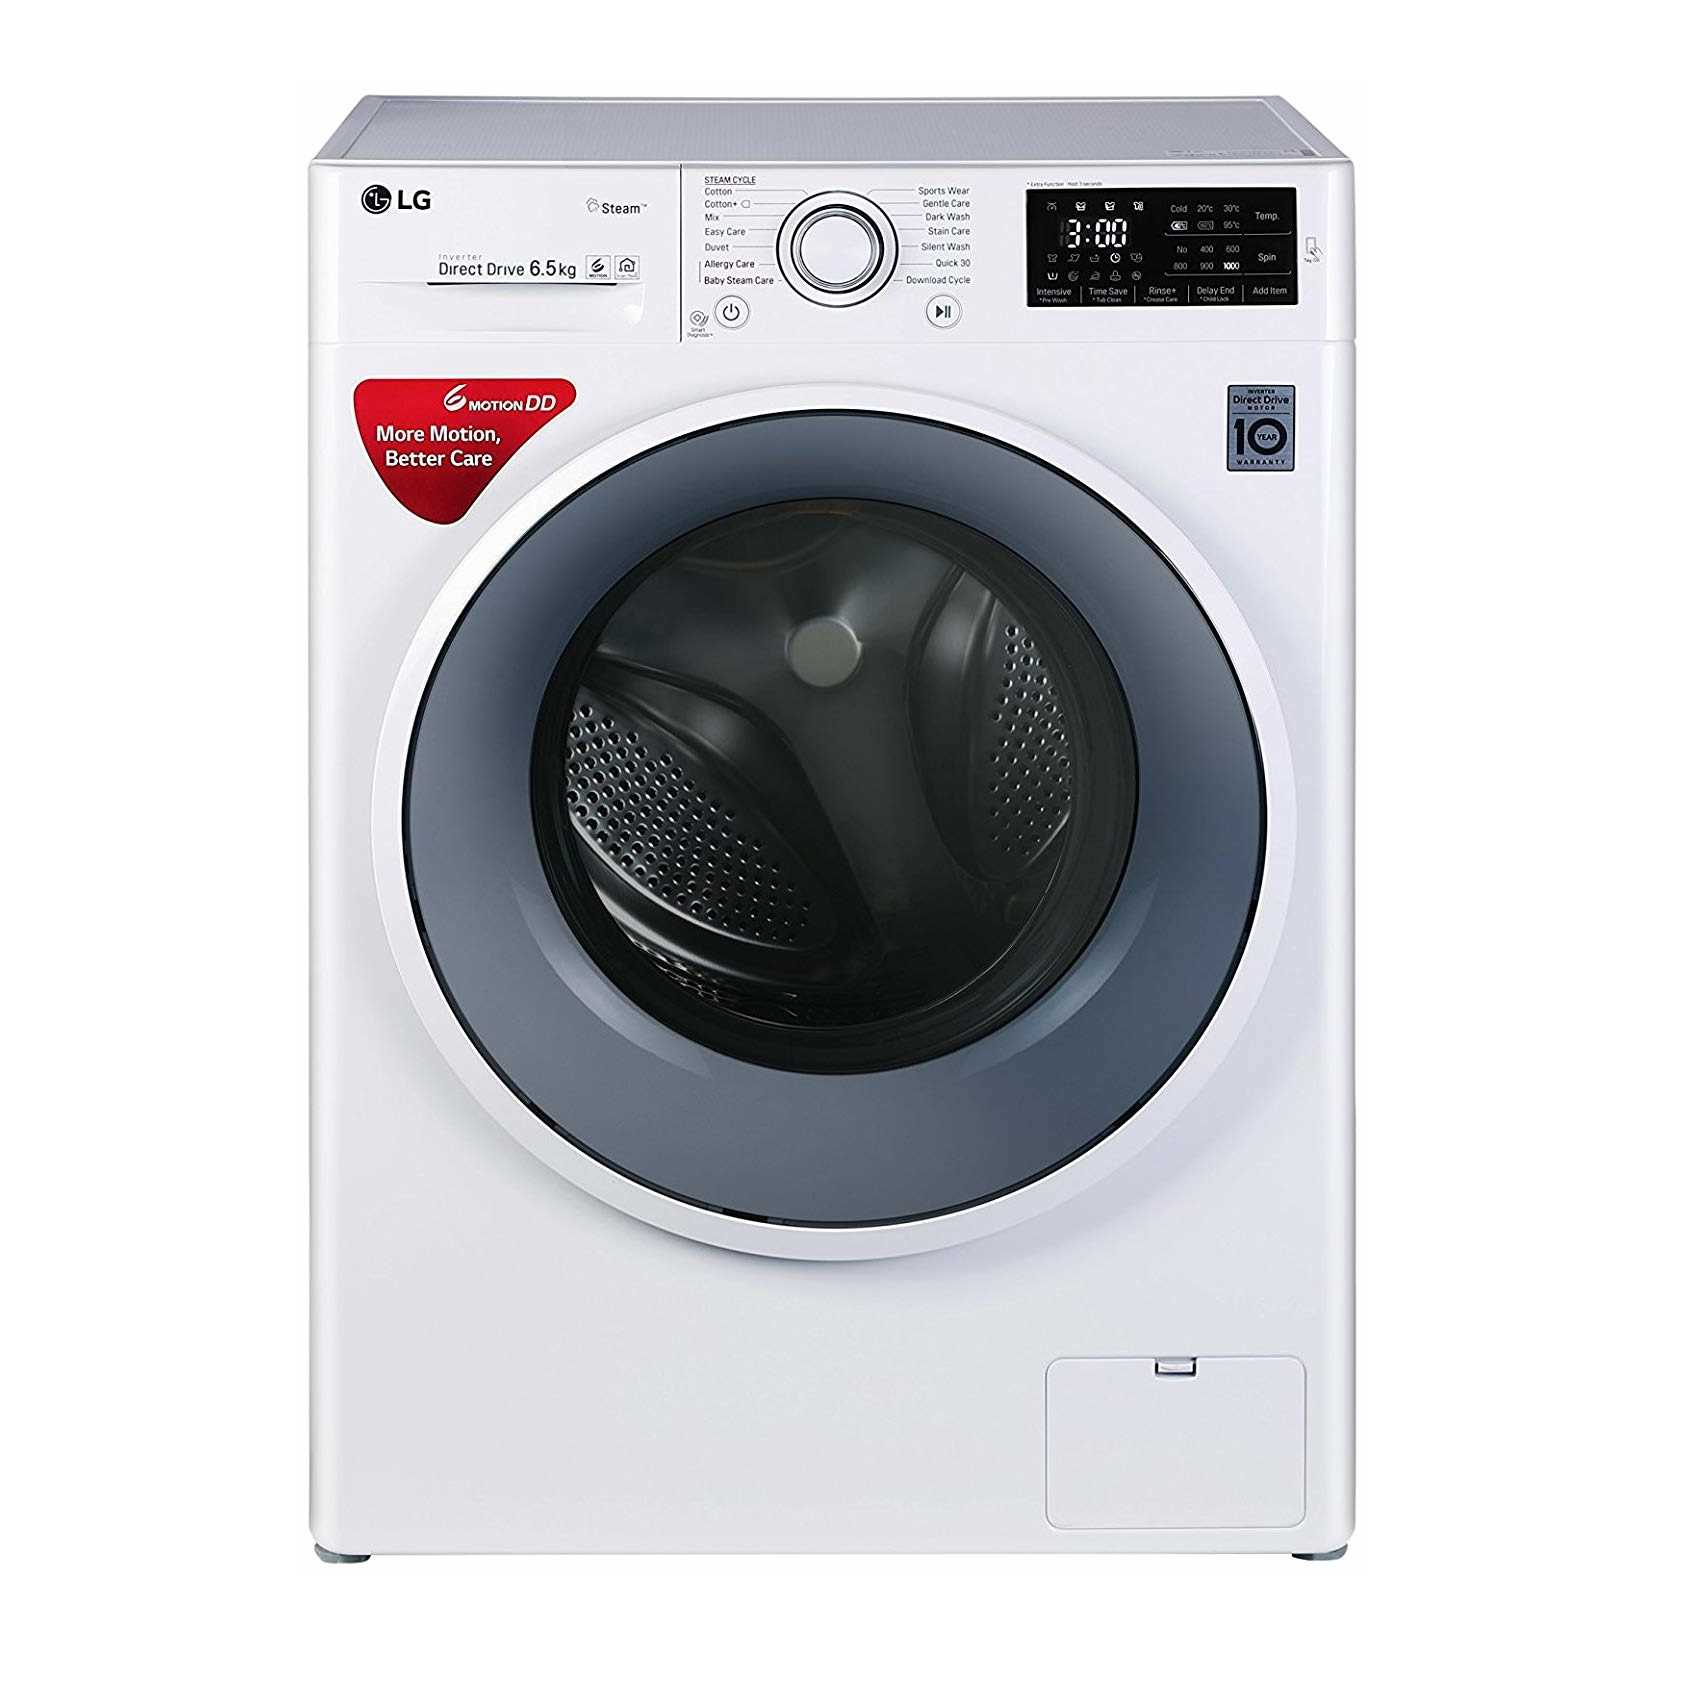 LG FHT1065SNW.ABWPEIL 6.5 Kg Fully Automatic Front Loading Washing Machine